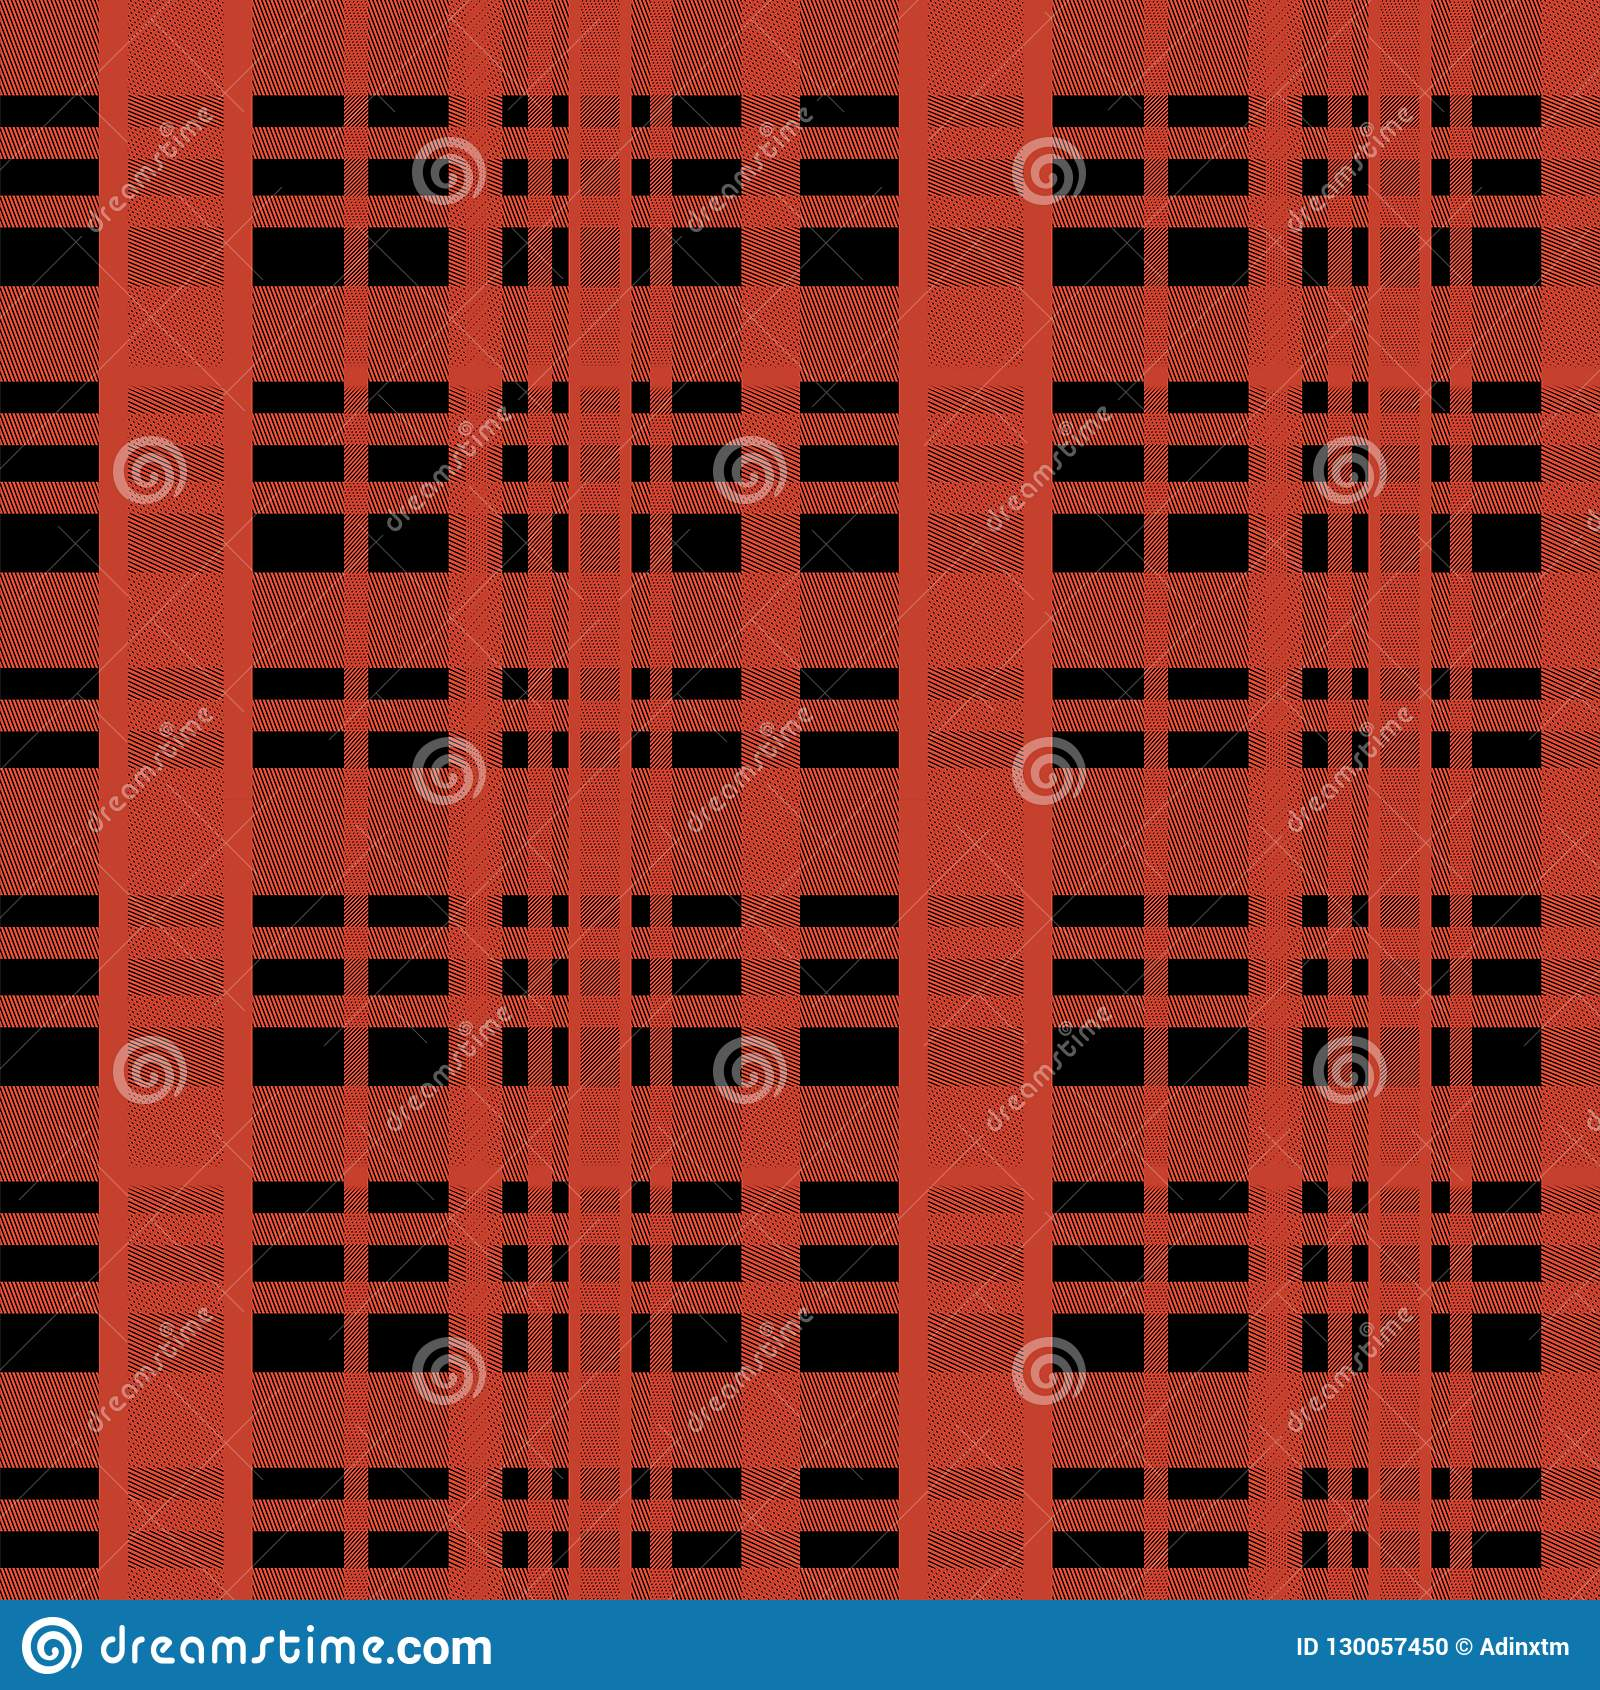 Seamless tartan scottish lumberjack pattern with red and black colors.